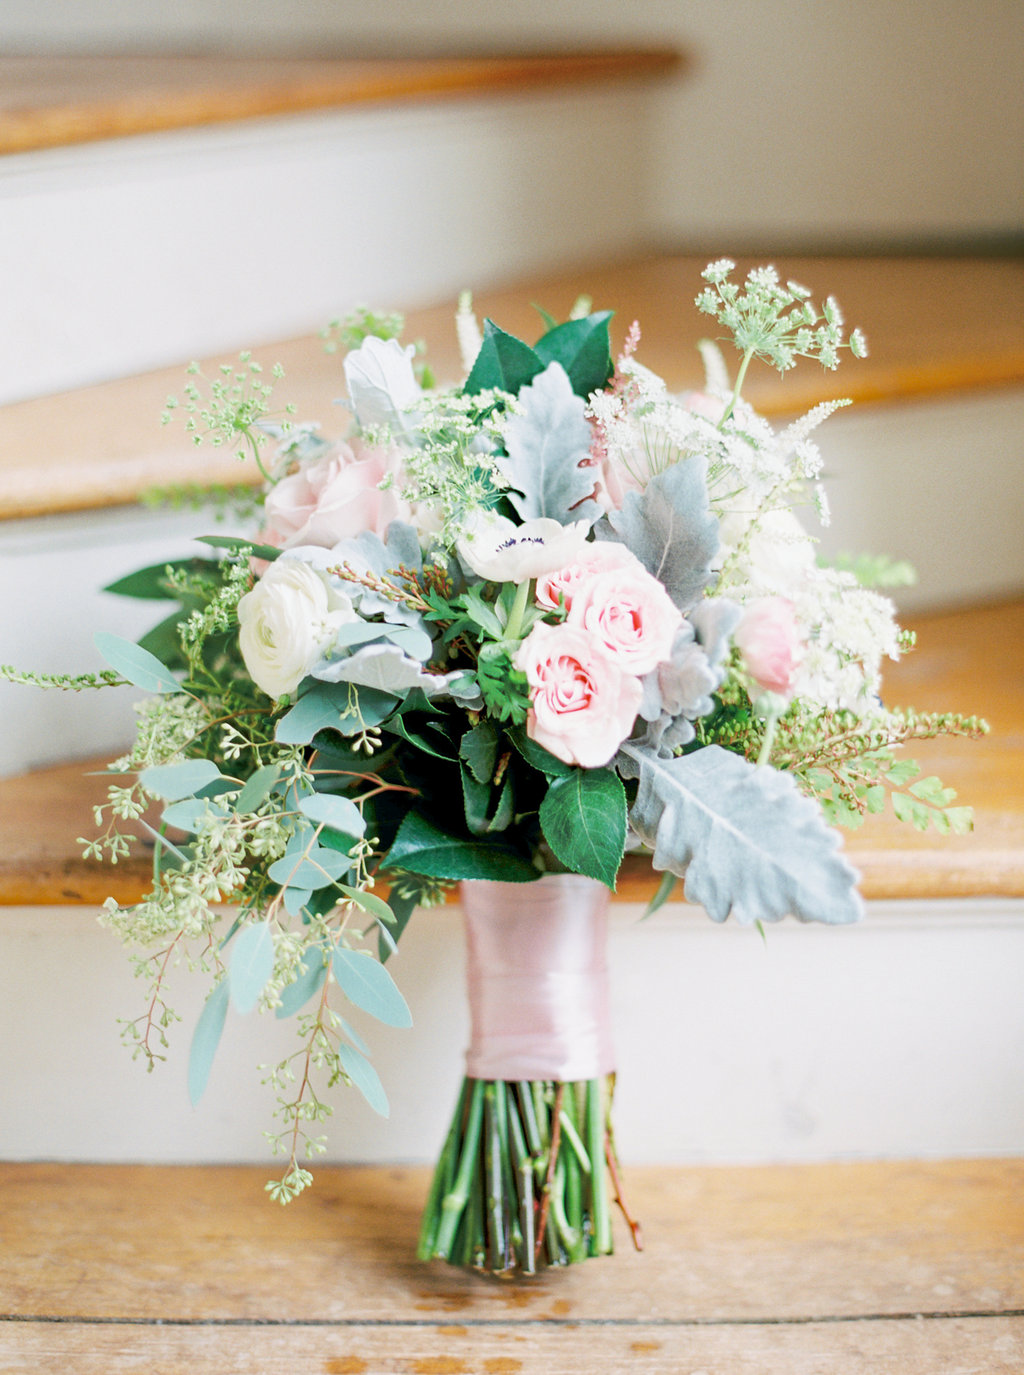 the-happy-bloom-photography-ivory-and-beau-wedding-planning-ivory-and-beau-bridal-boutique-whitfield-chapel-wedding-10-downing-wedding-savannah-wedding-historic-savannah-wedding-savannah-wedding-planner-savannah-weddings-a-to-zinnias-4.jpg